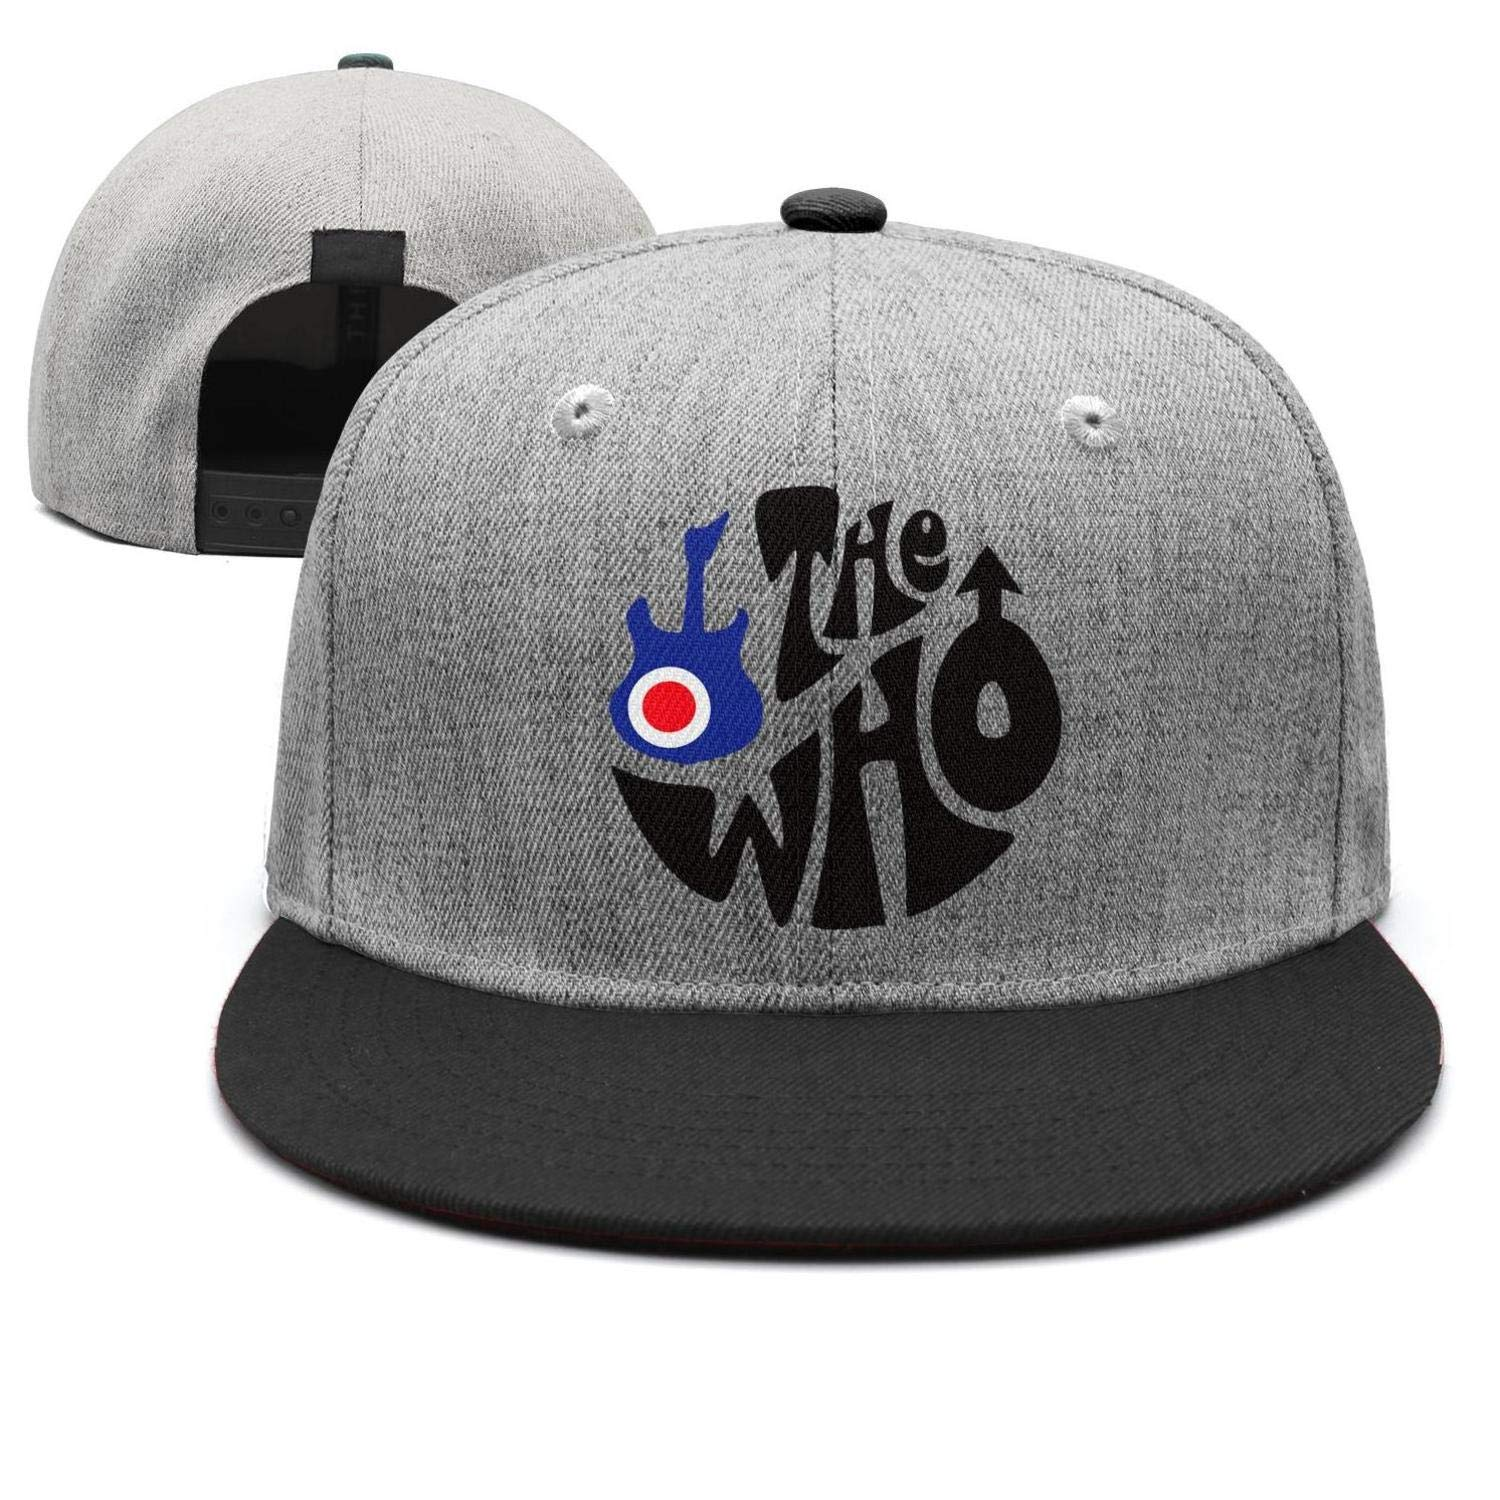 Fashion Baseball Cap The-Who-Mod-Target- Unisex Trucker Hat at Amazon Men s  Clothing store  2c3fa06a46e4